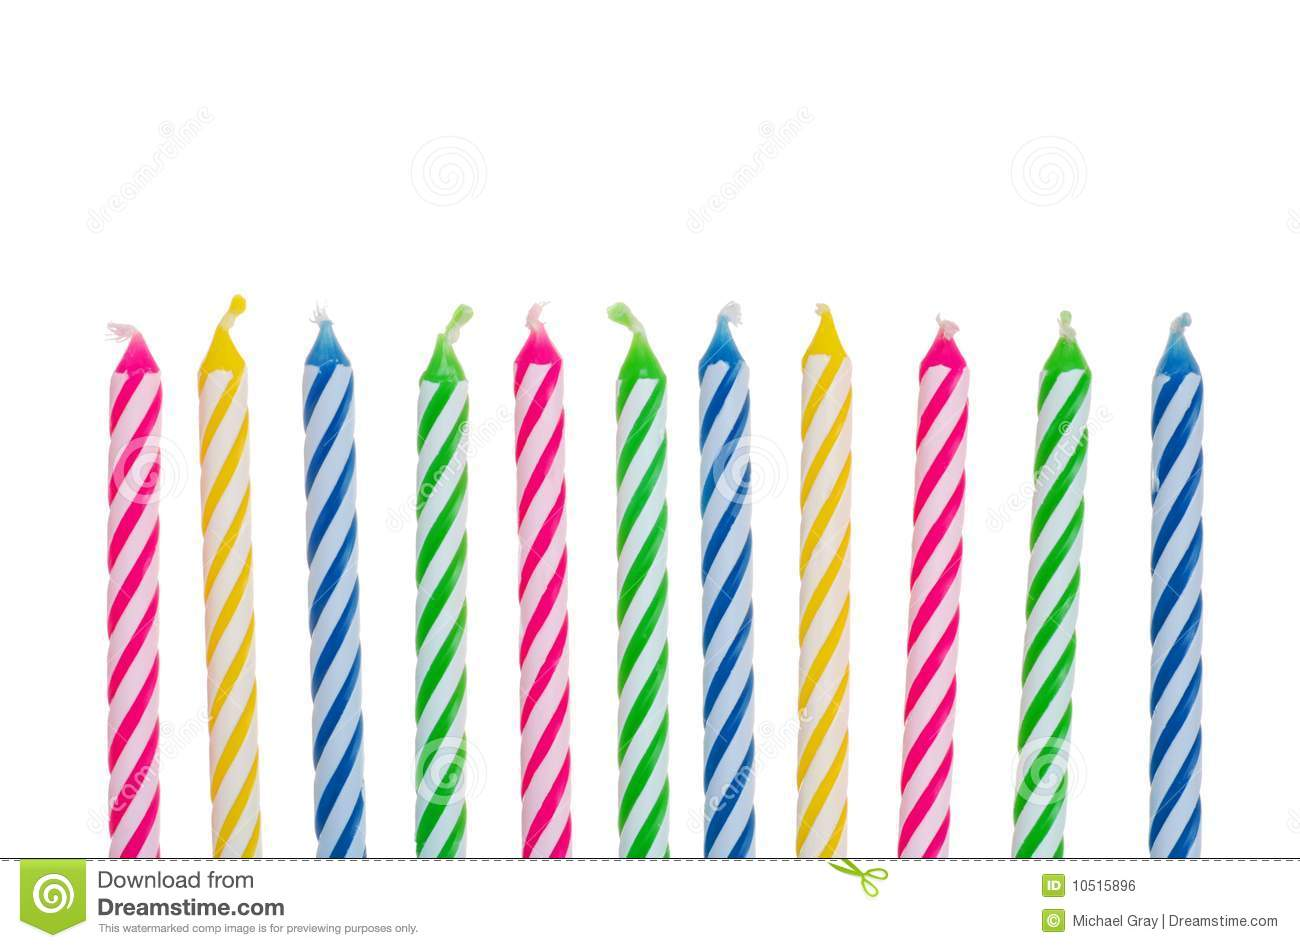 Colorful Birthday Candles Royalty Free Stock Image - Image: 10515896